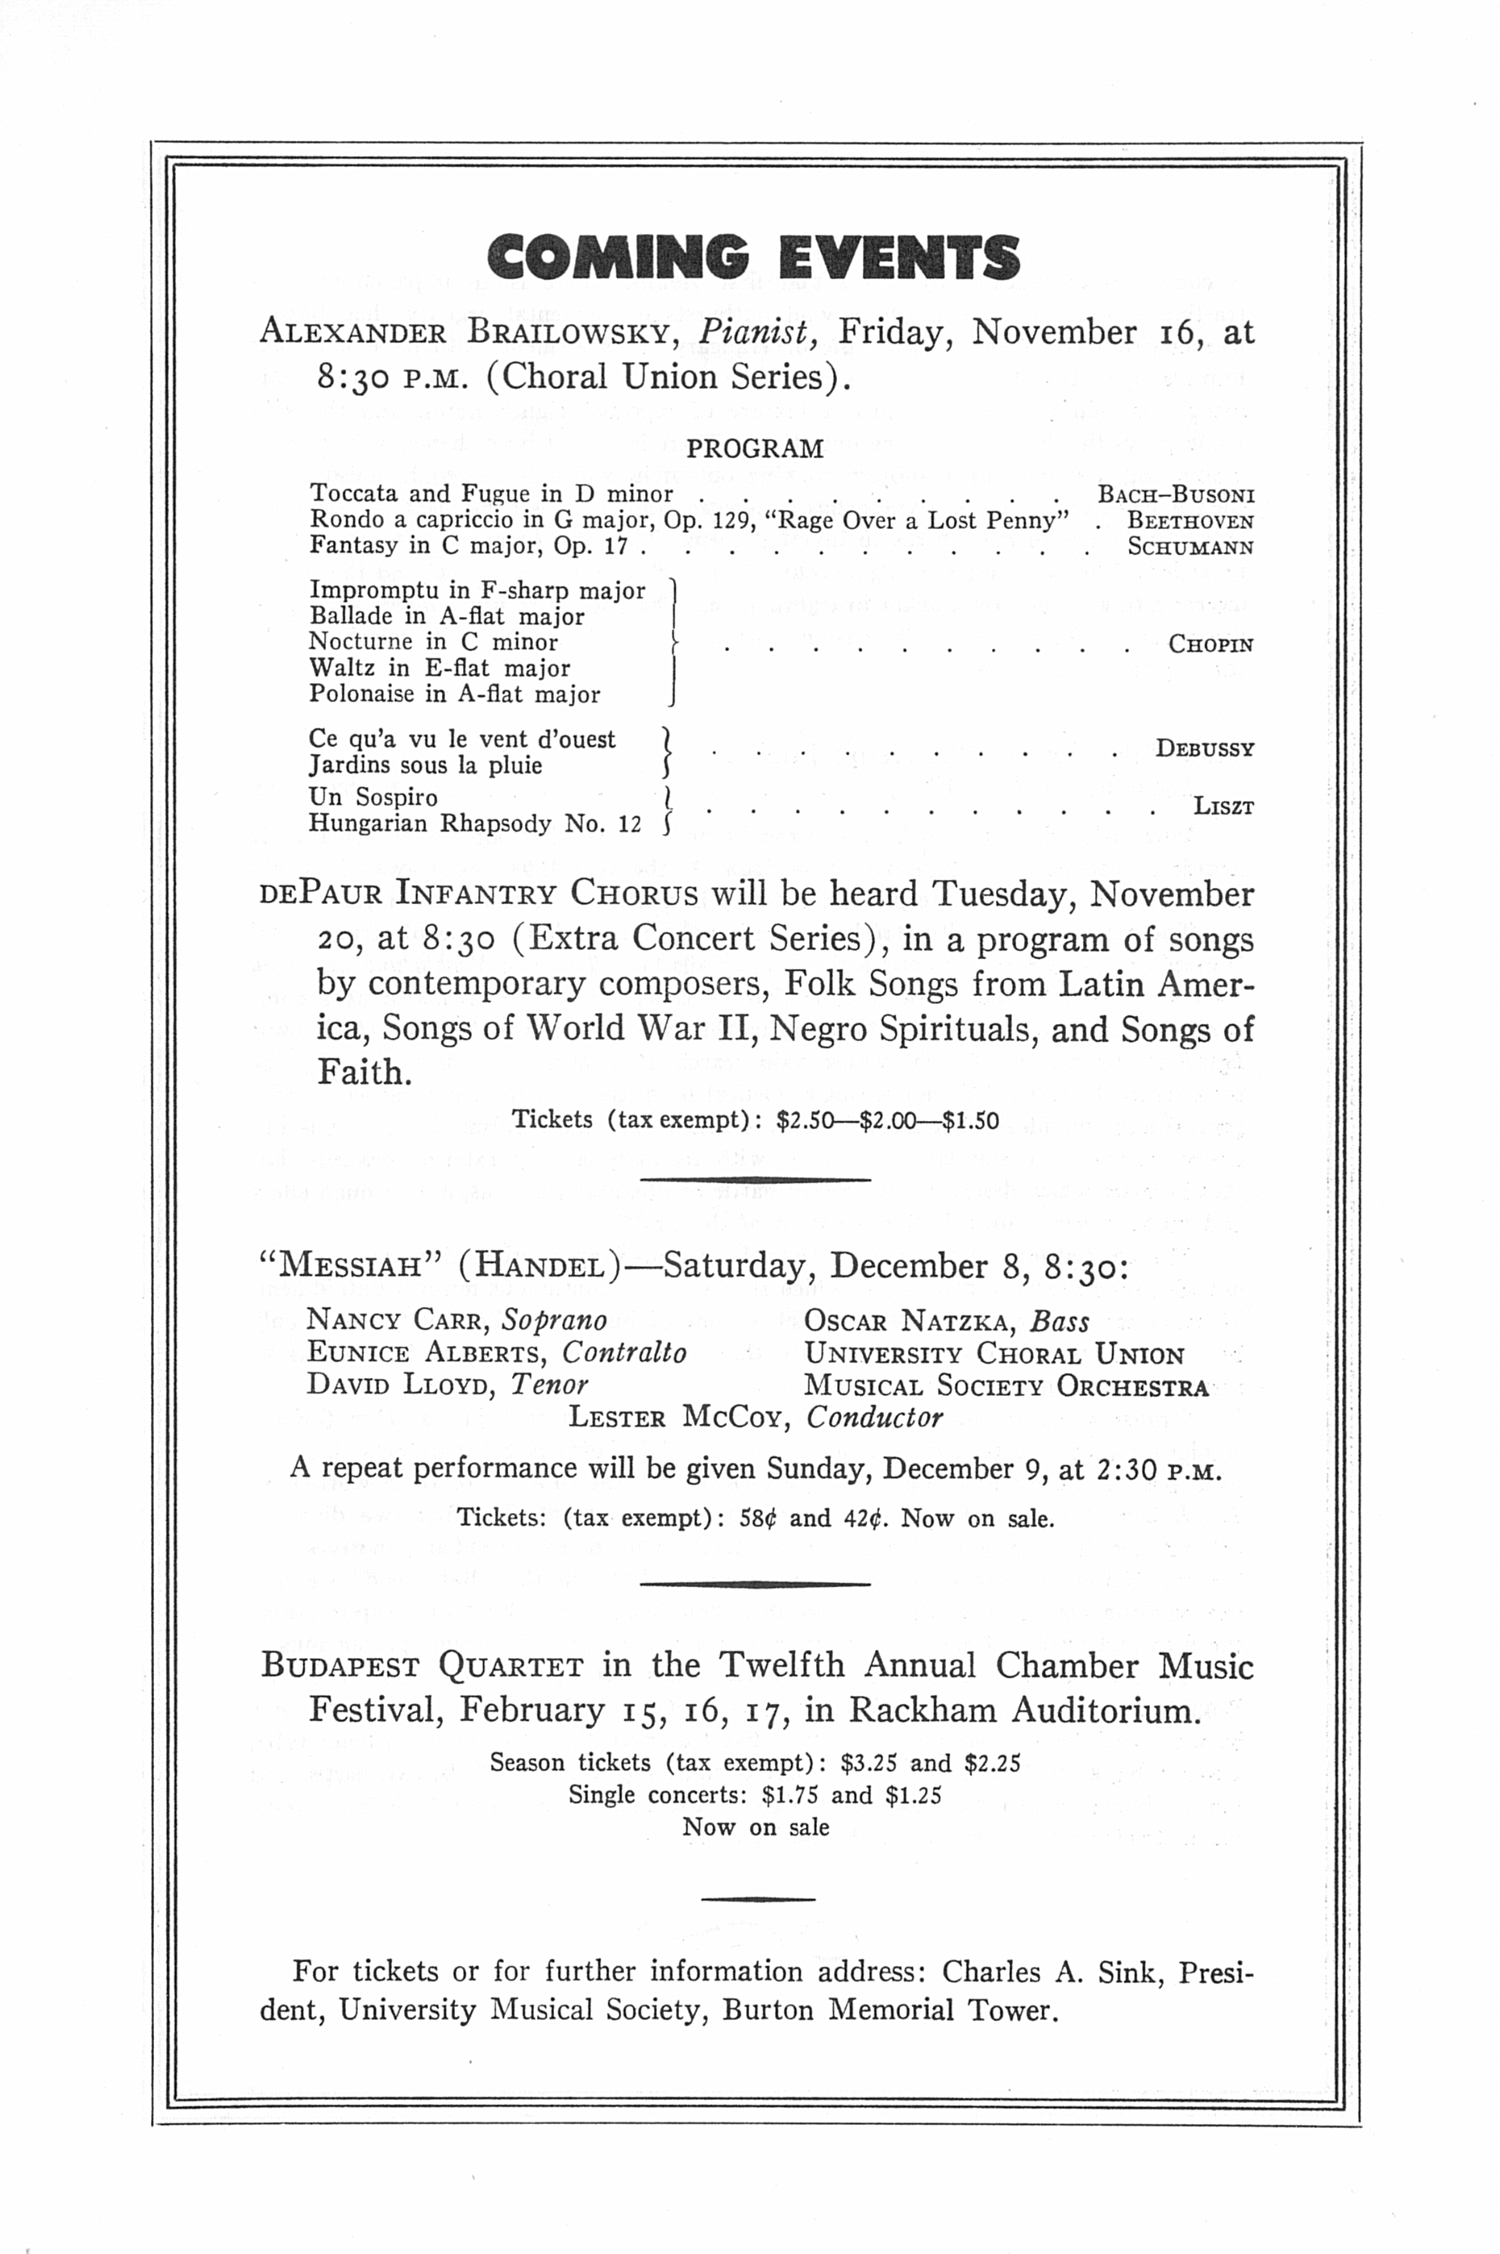 UMS Concert Program, November 4, 1951: Seventy-third Annual Choral Union Concert Series -- The Cleveland Orchestra image